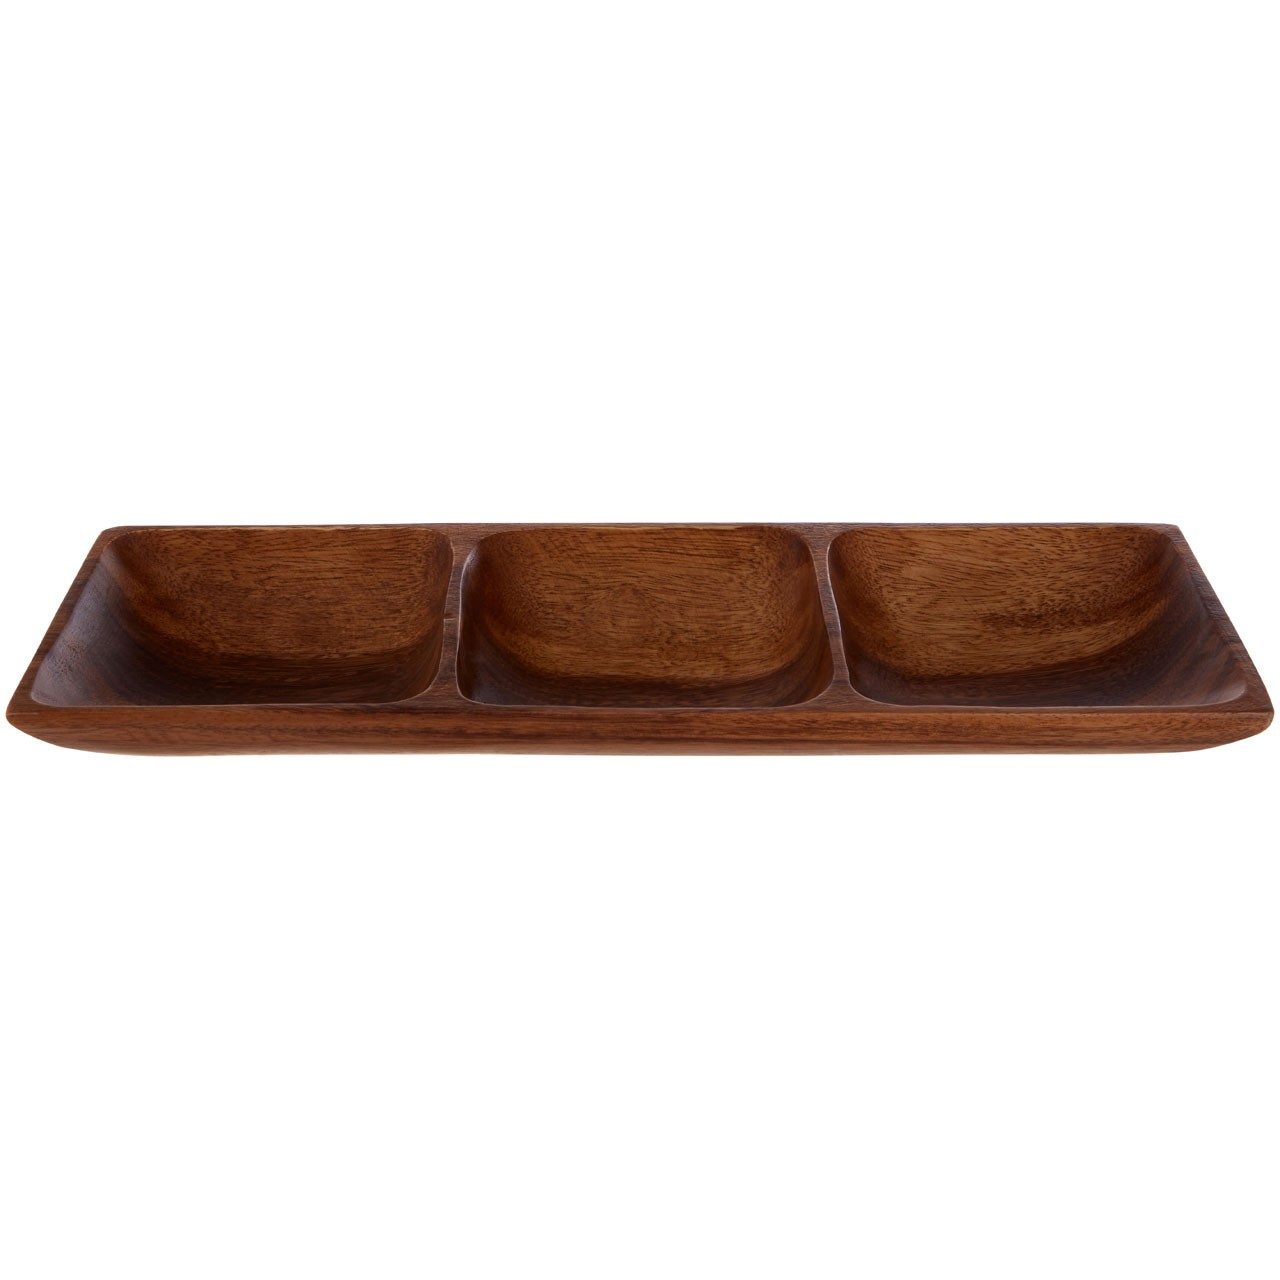 3-Section Rectangle Serving Dish - Acacia Wood